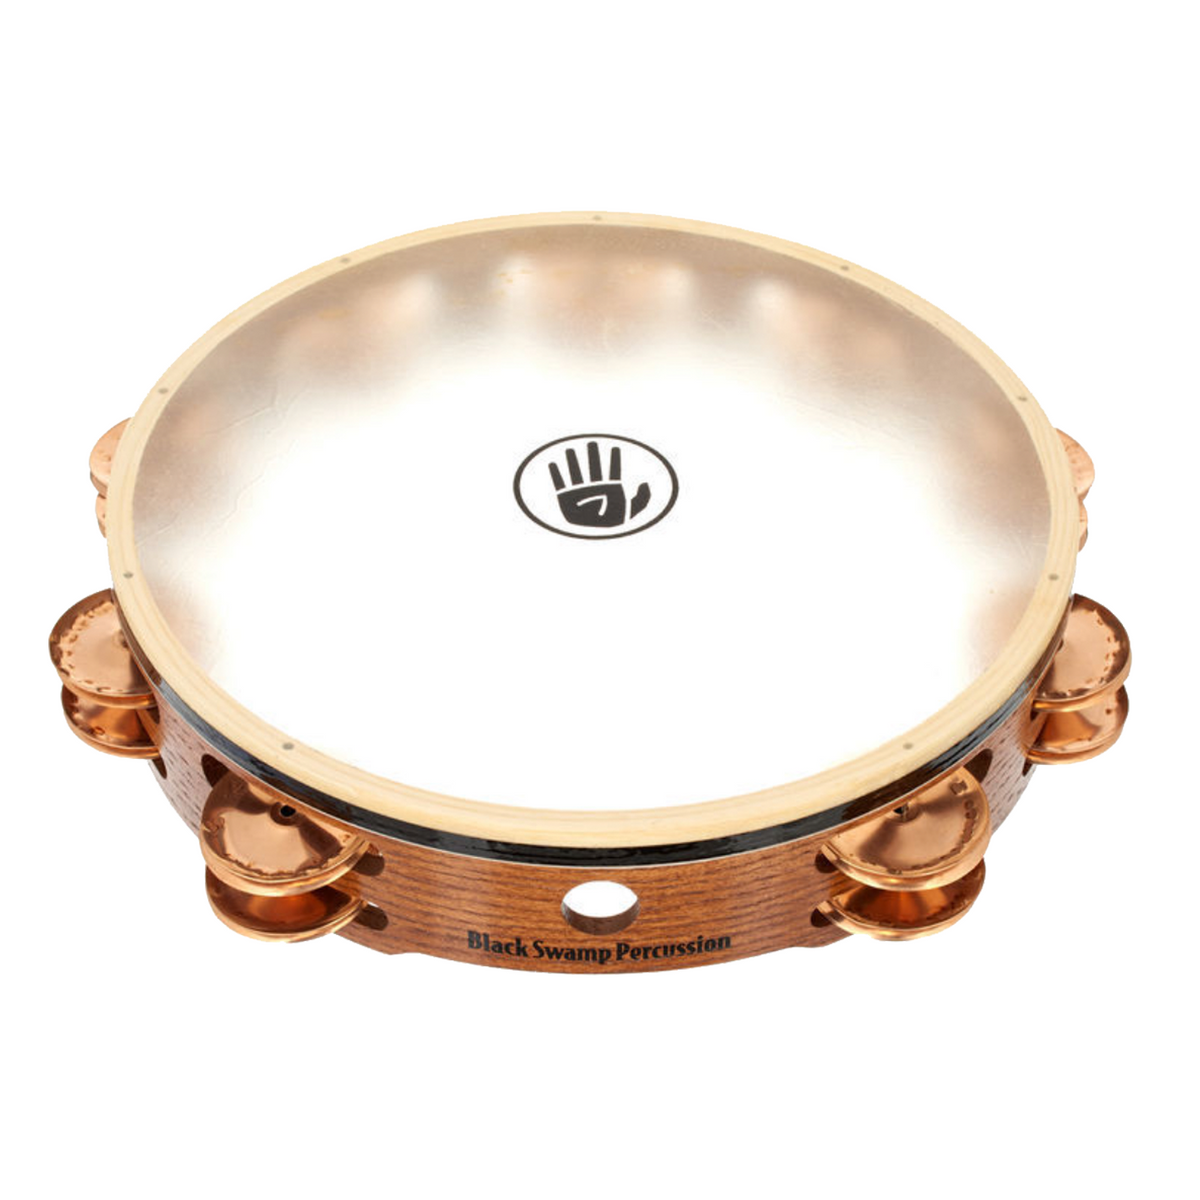 Black Swamp - Double Row Calf Head Tambourines-Percussion Accessories-Black Swamp-Phosphor Bronze-Music Elements